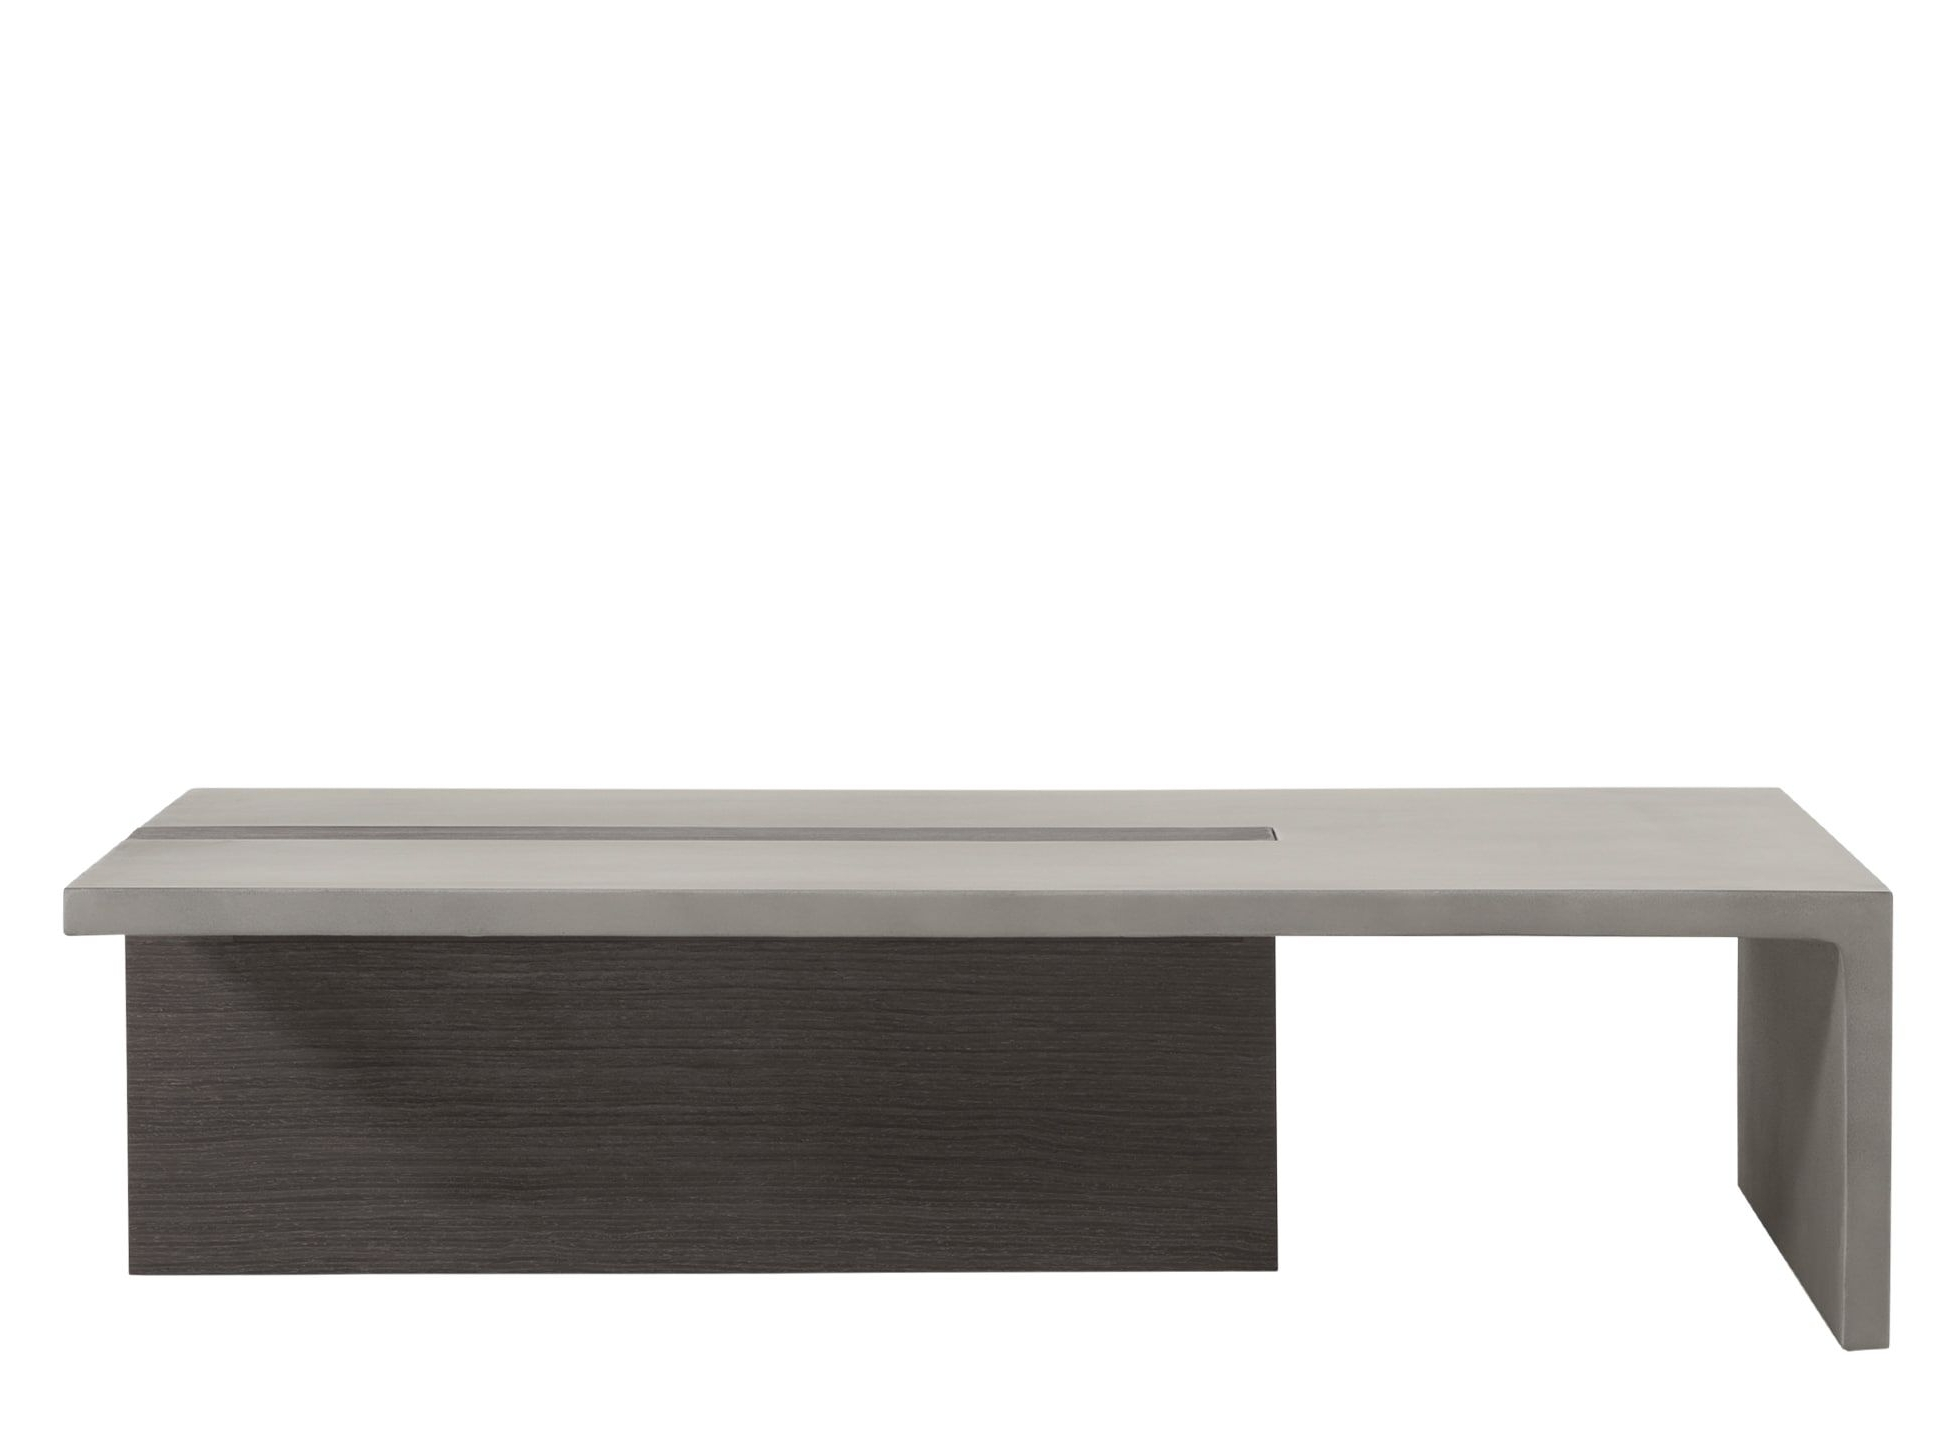 Claus Coffee Table, Concrete In (View 14 of 25)